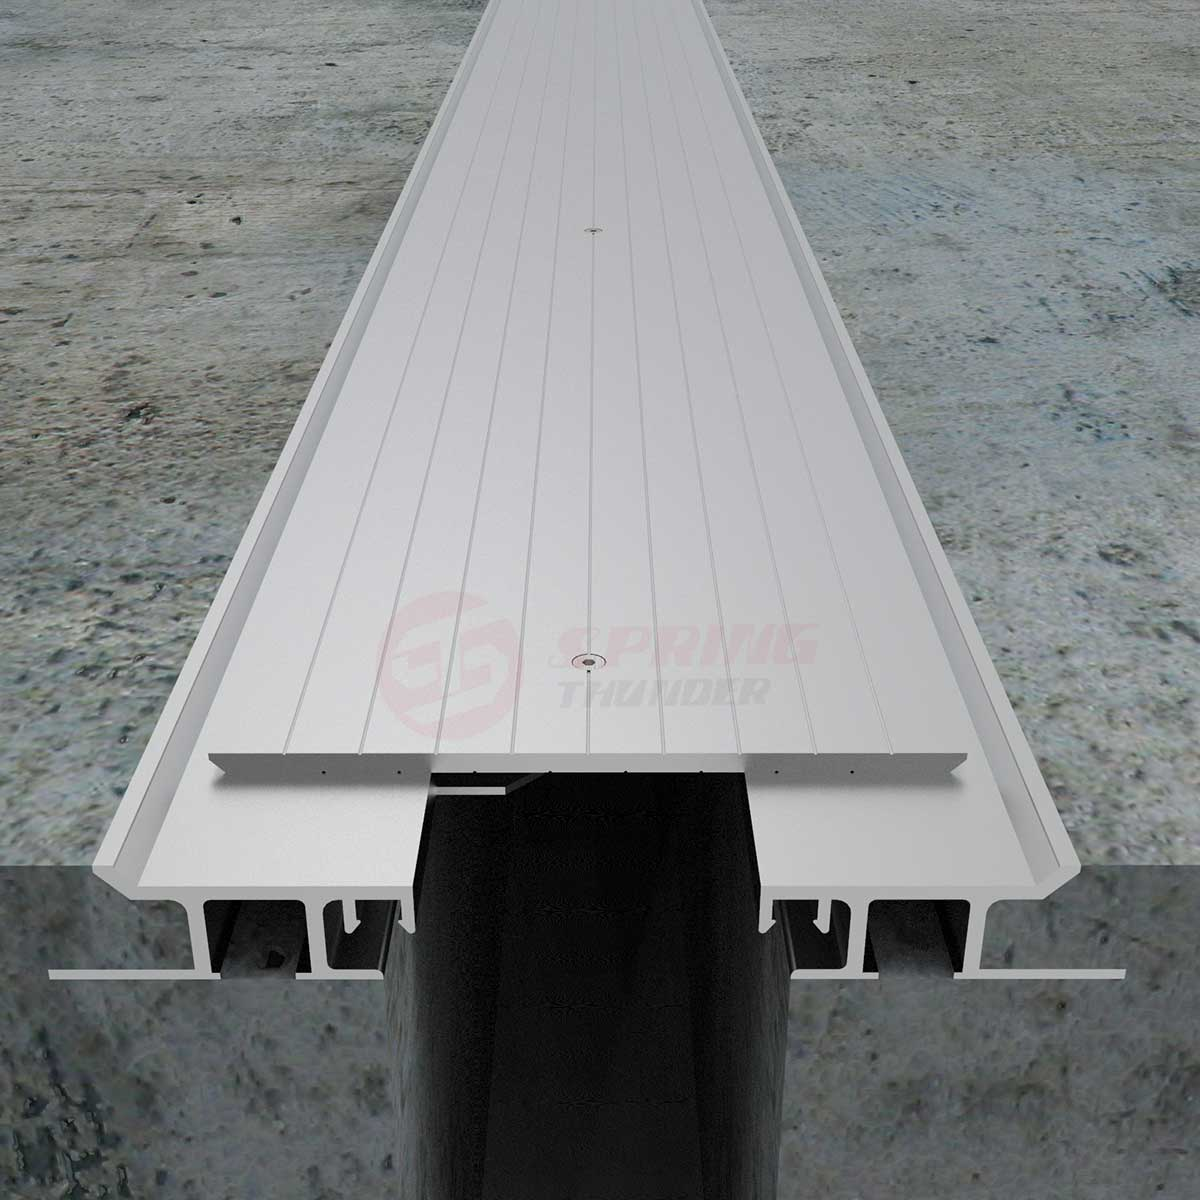 Parking Garage Expansion Joint Cover